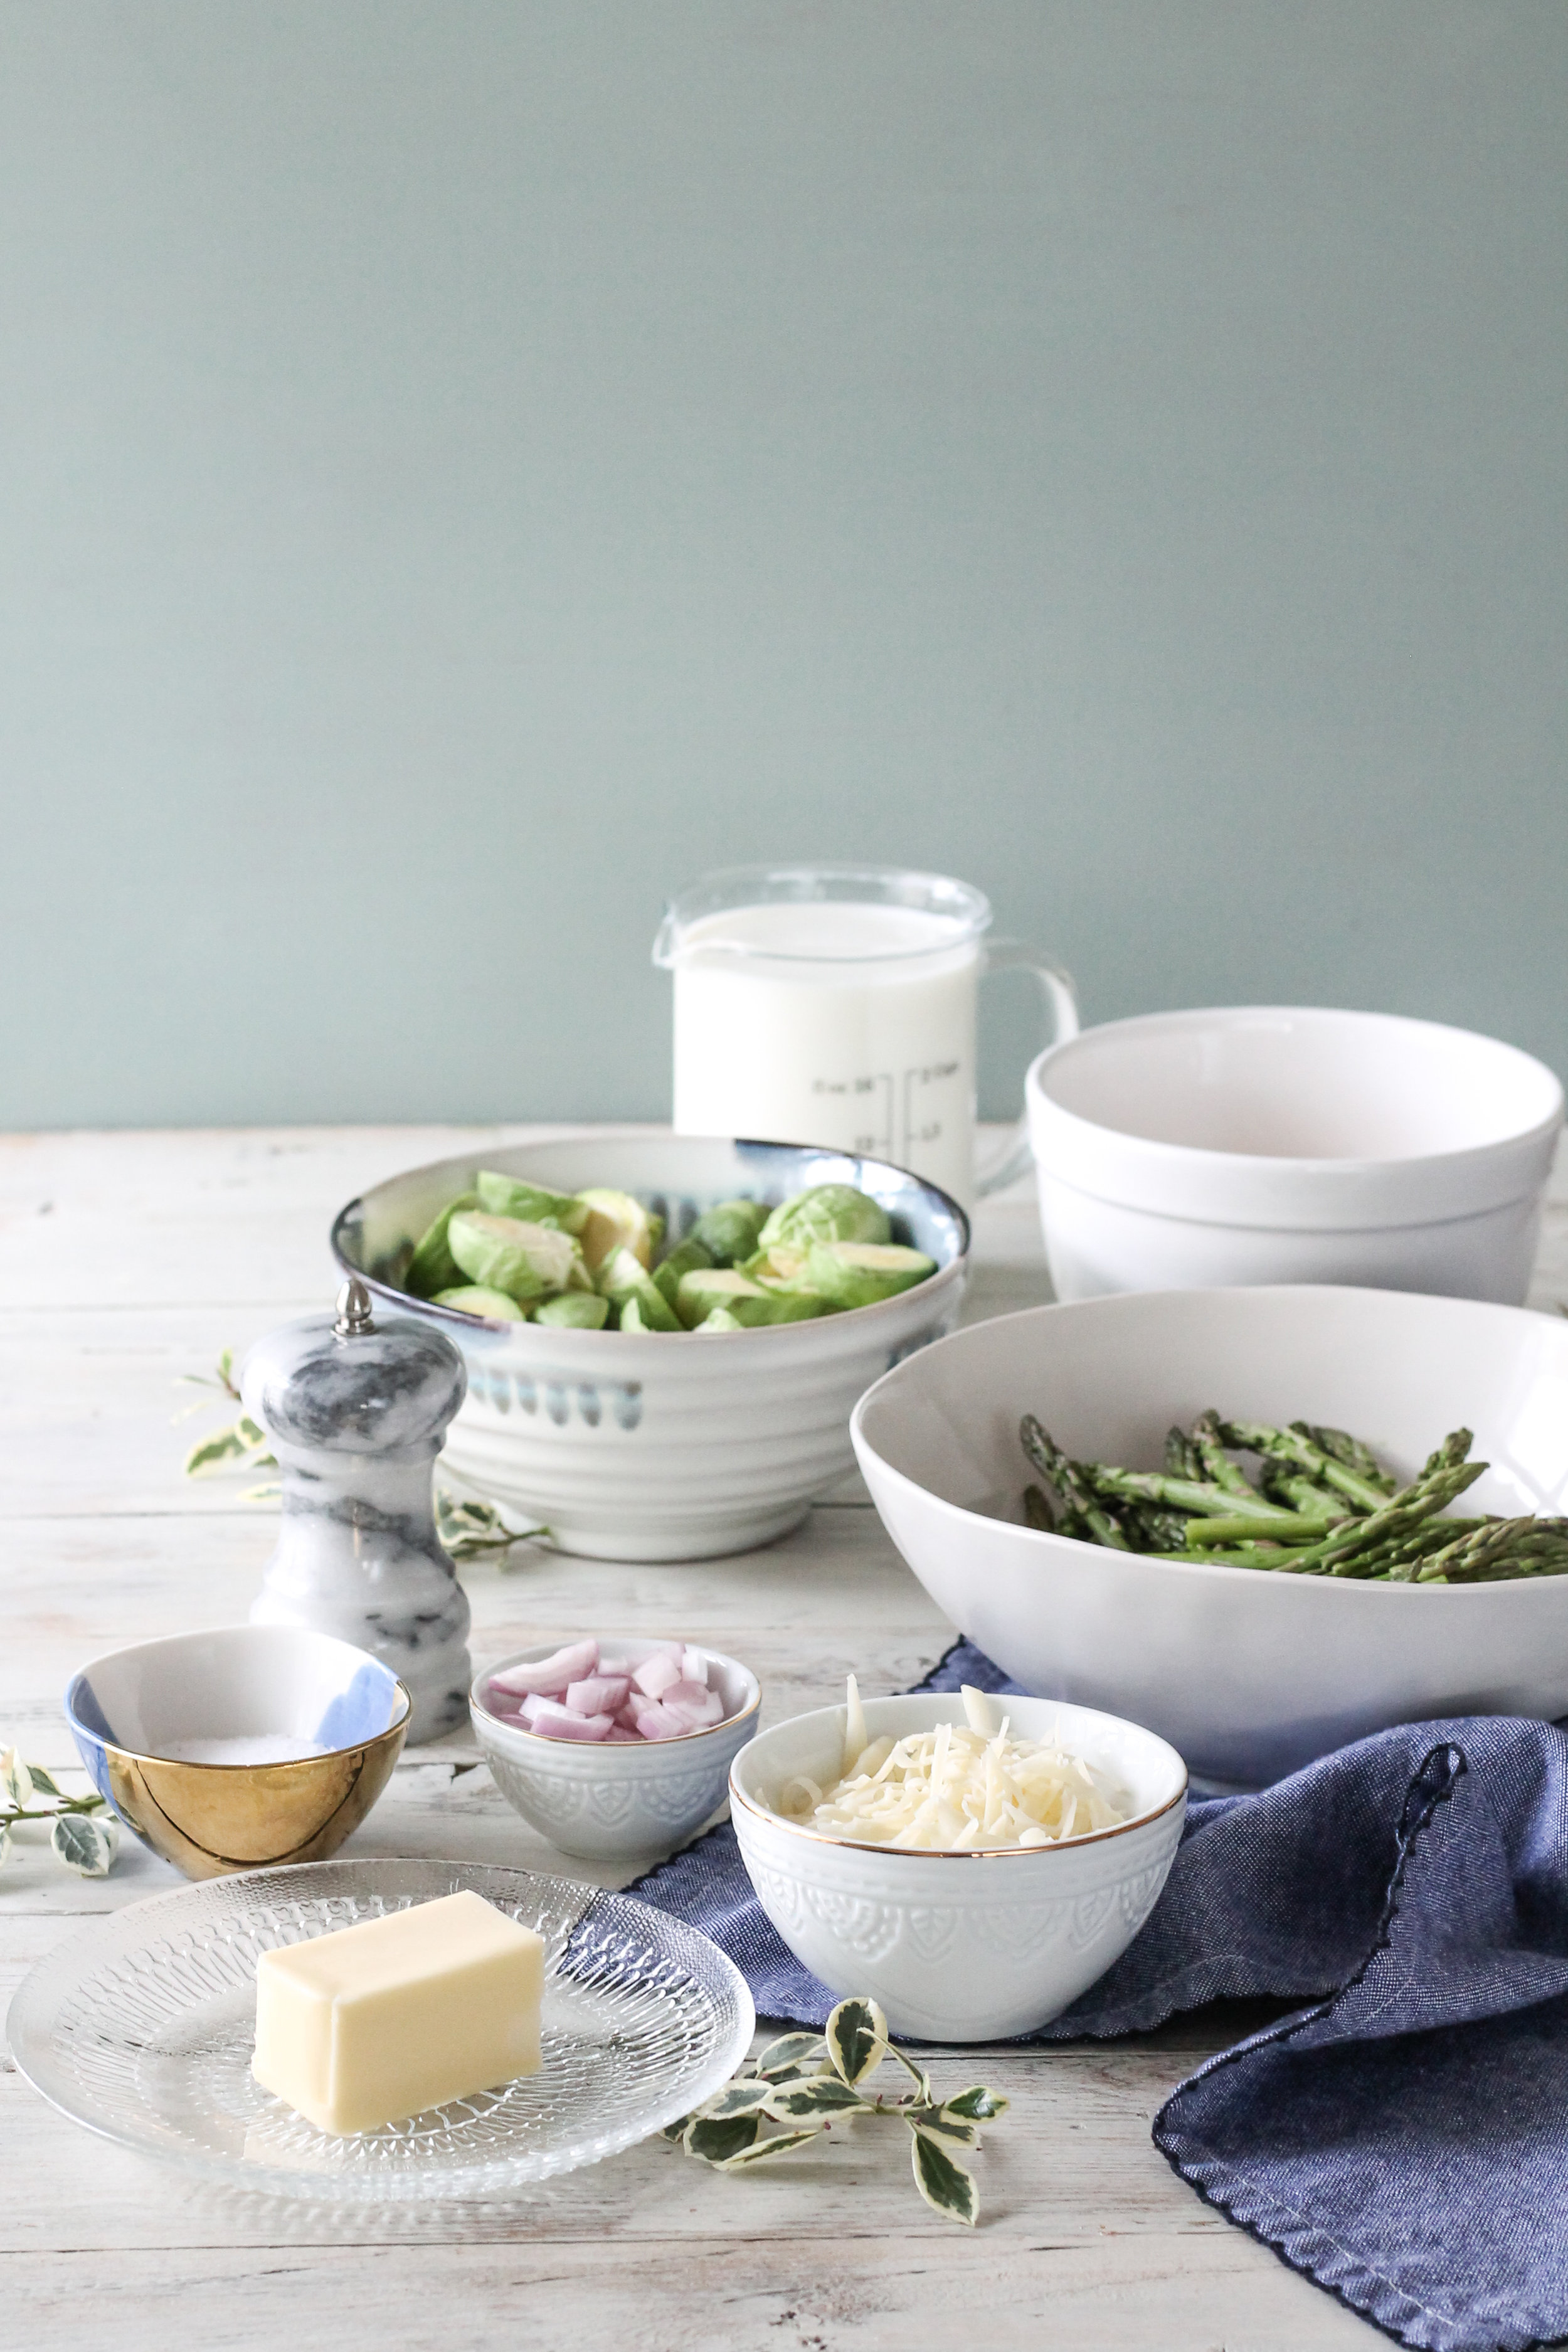 Creamy Baked Brussel Spouts and Asparagus makes the perfect holiday side dish! [ www.pedanticfoodie.com ]